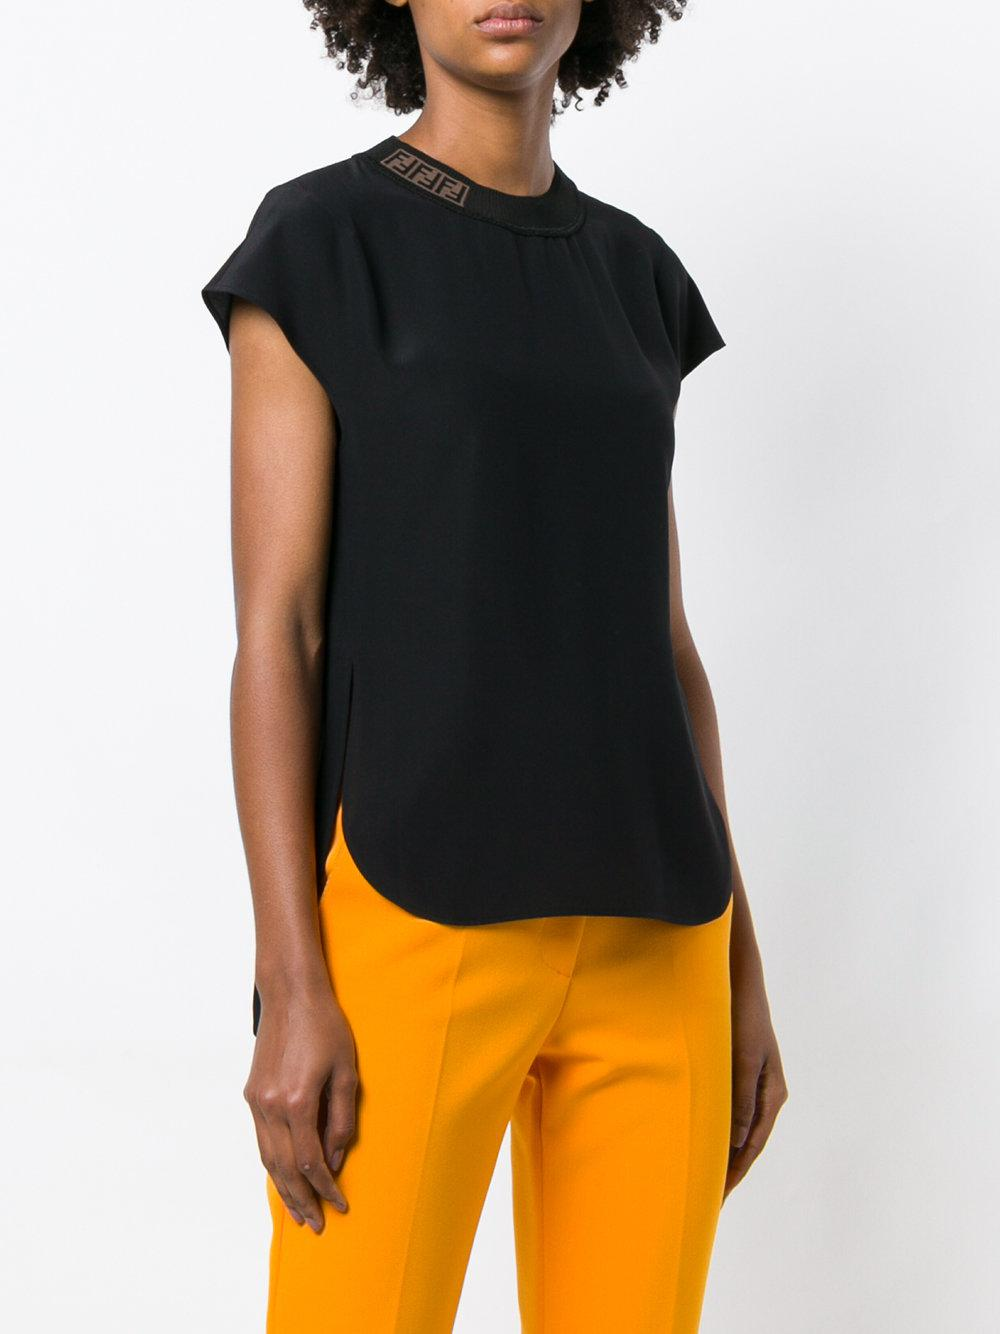 logo cap sleeve high low tee - Black Fendi Shop Offer Cheap Online Manchester Great Sale For Sale Perfect Sale Online Recommend Discount ADtBhIv